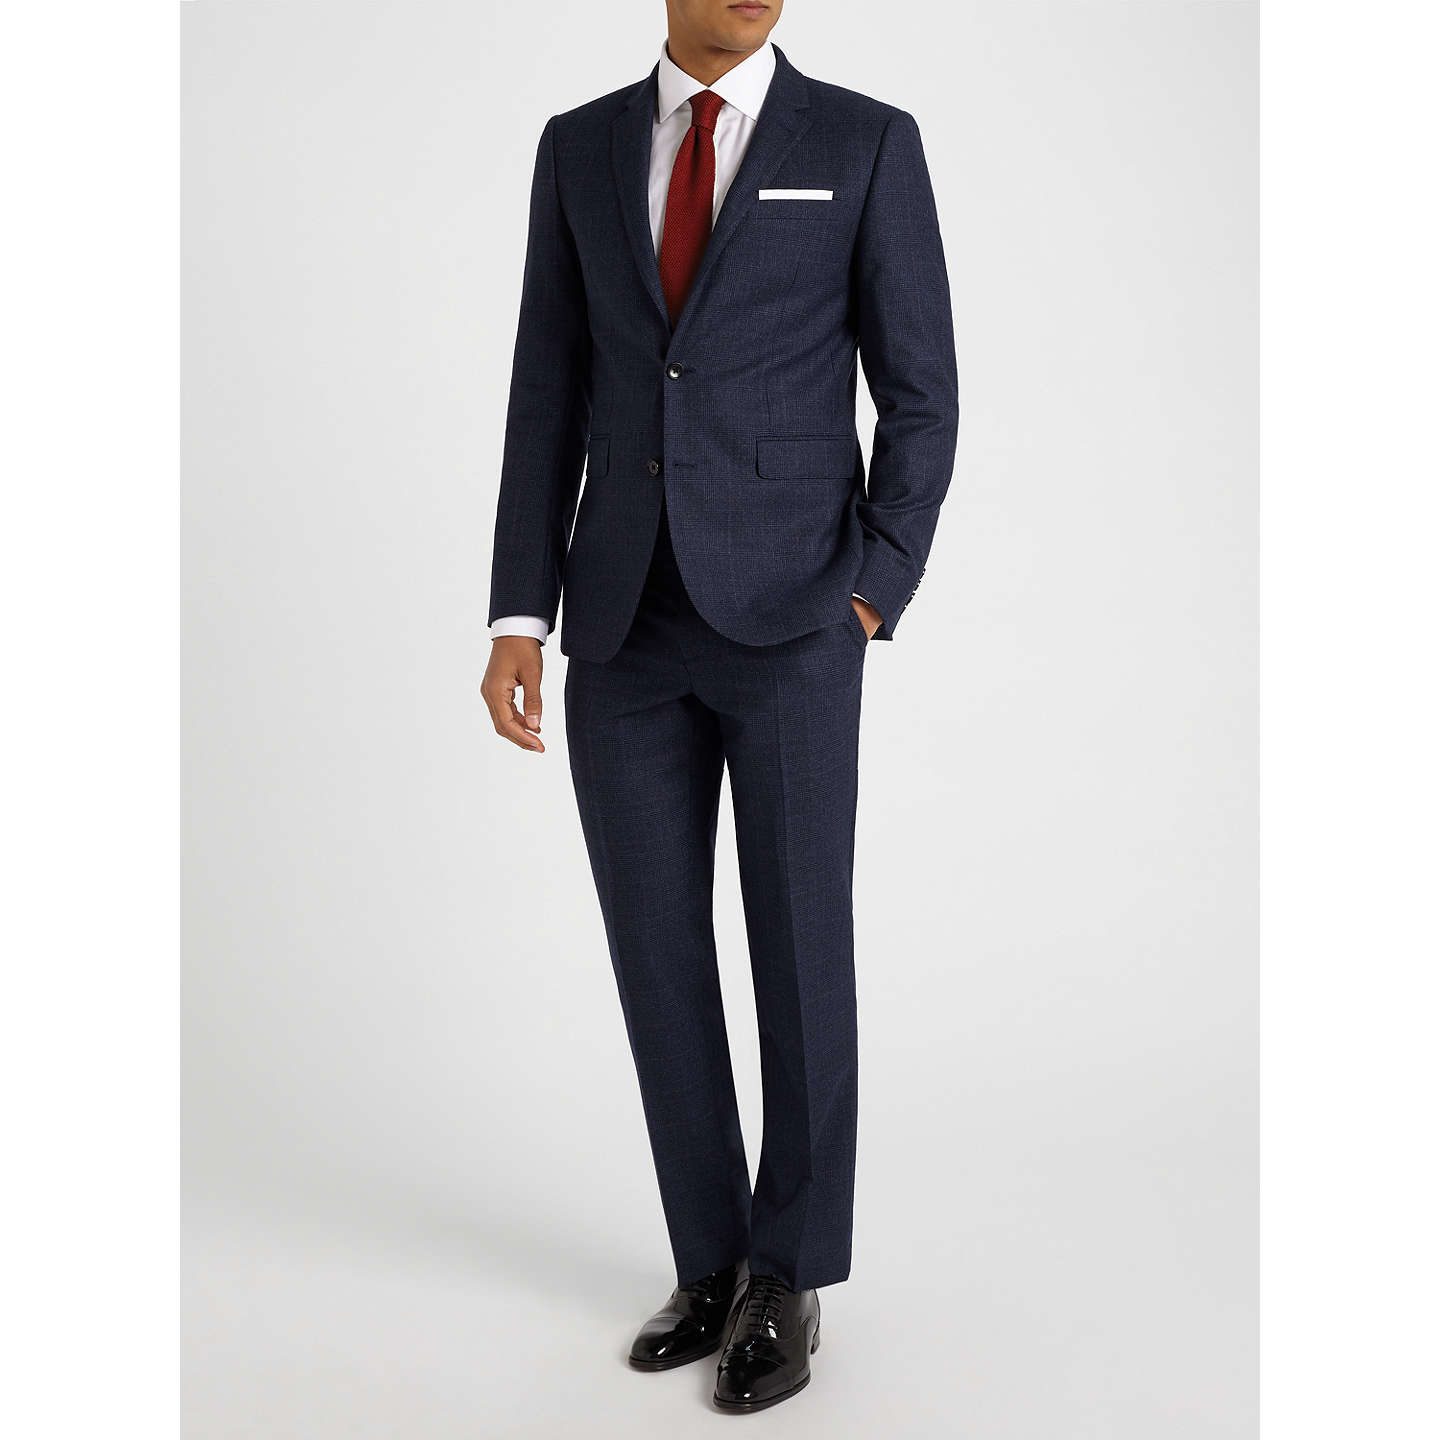 BuyJohn Lewis Check Super 100s Wool Tailored Fit Suit Trousers, Navy, 44R Online at johnlewis.com